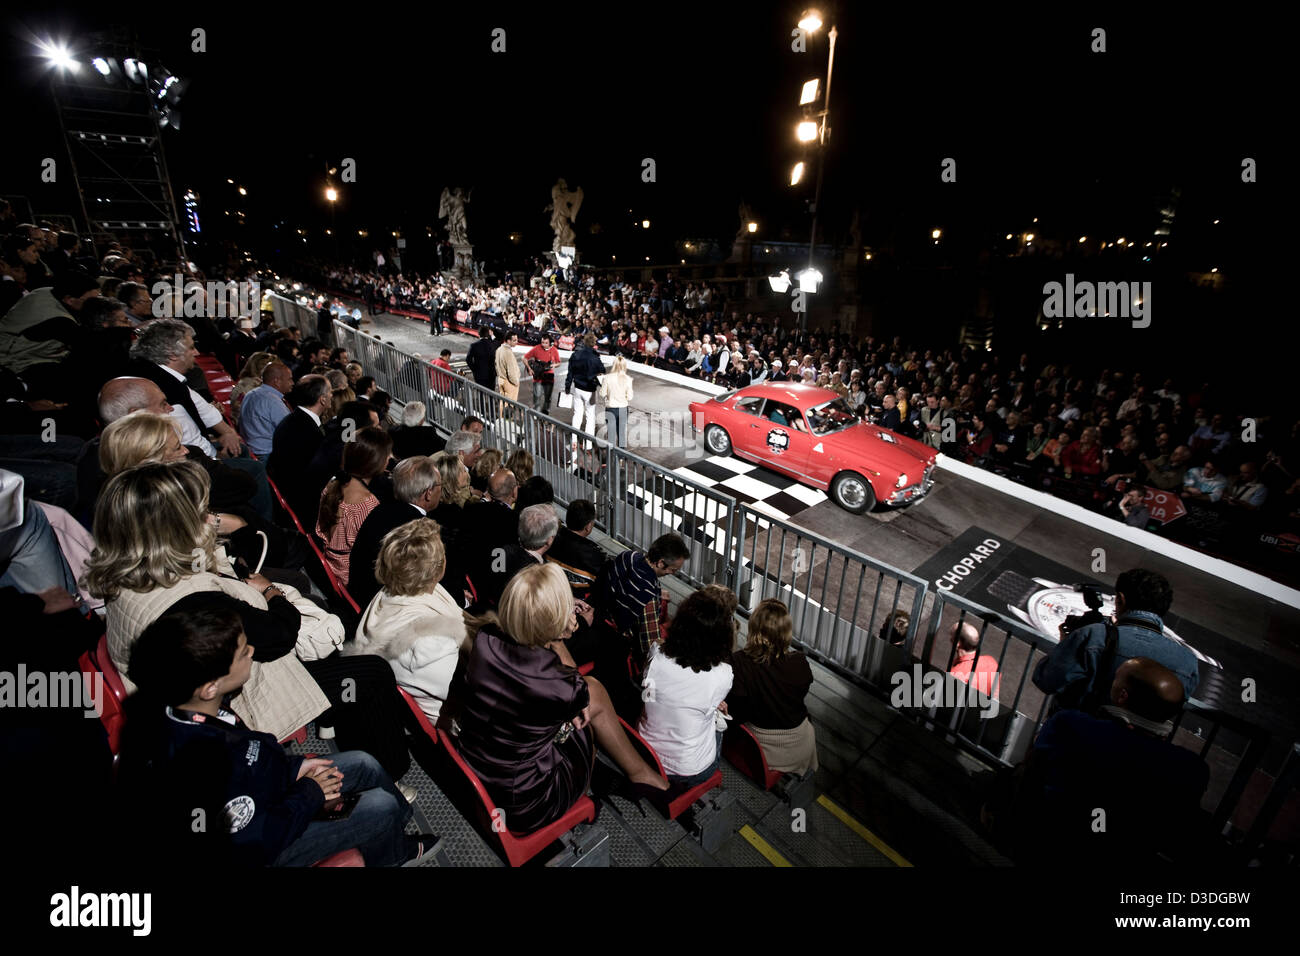 Spectators at Mille Miglia car race, Italy, 2008 - Stock Image